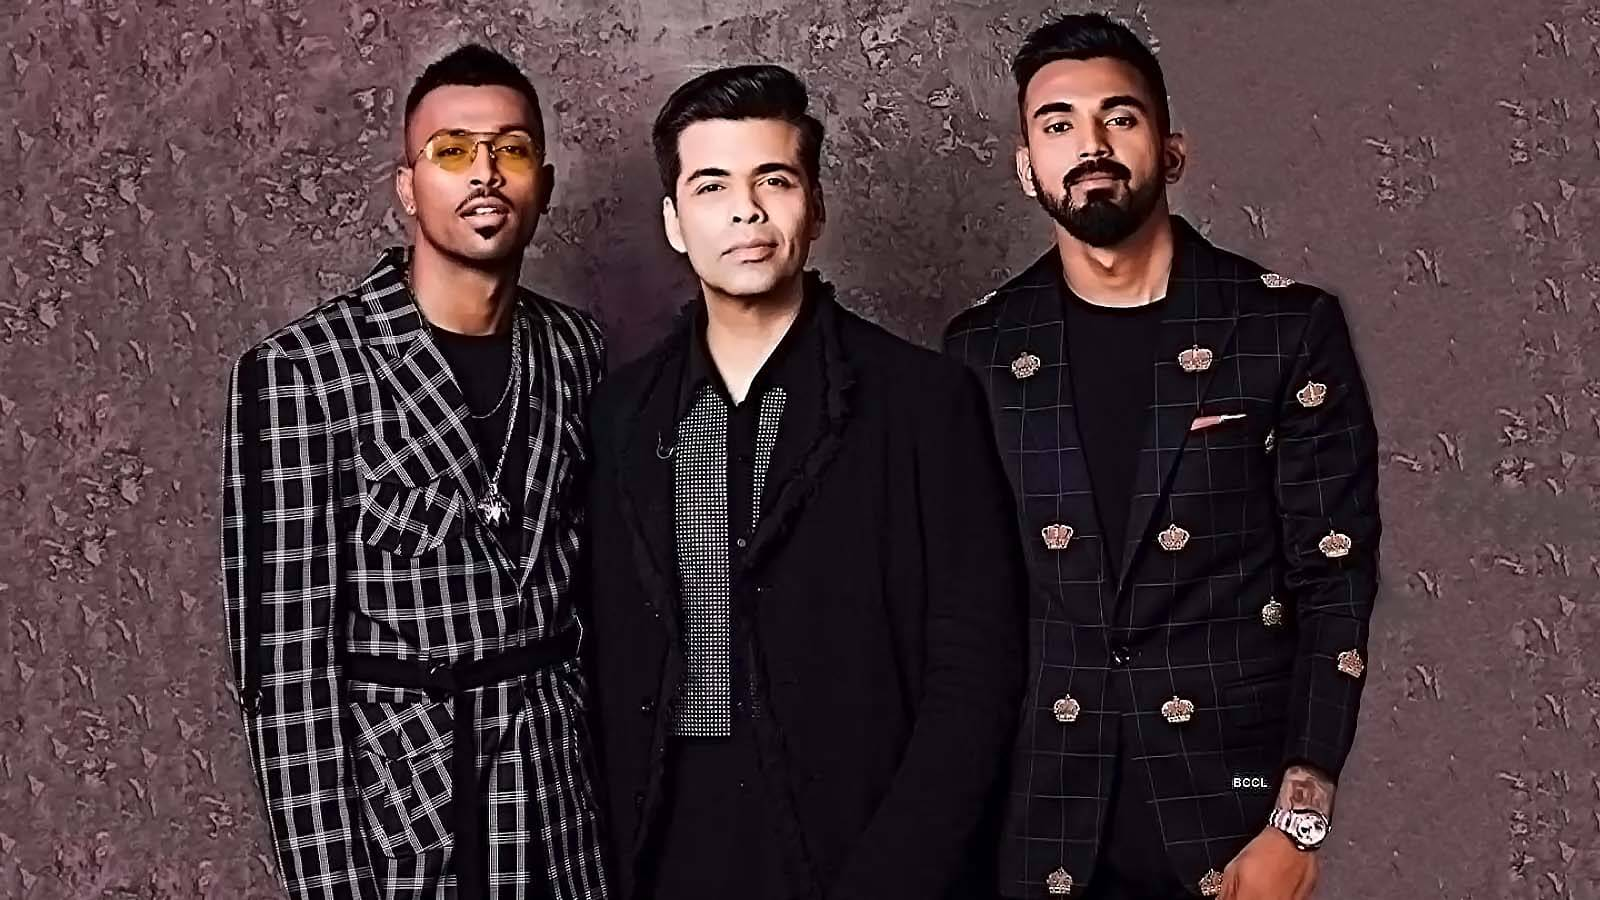 Koffee with Karan Hardik and KL Rahul